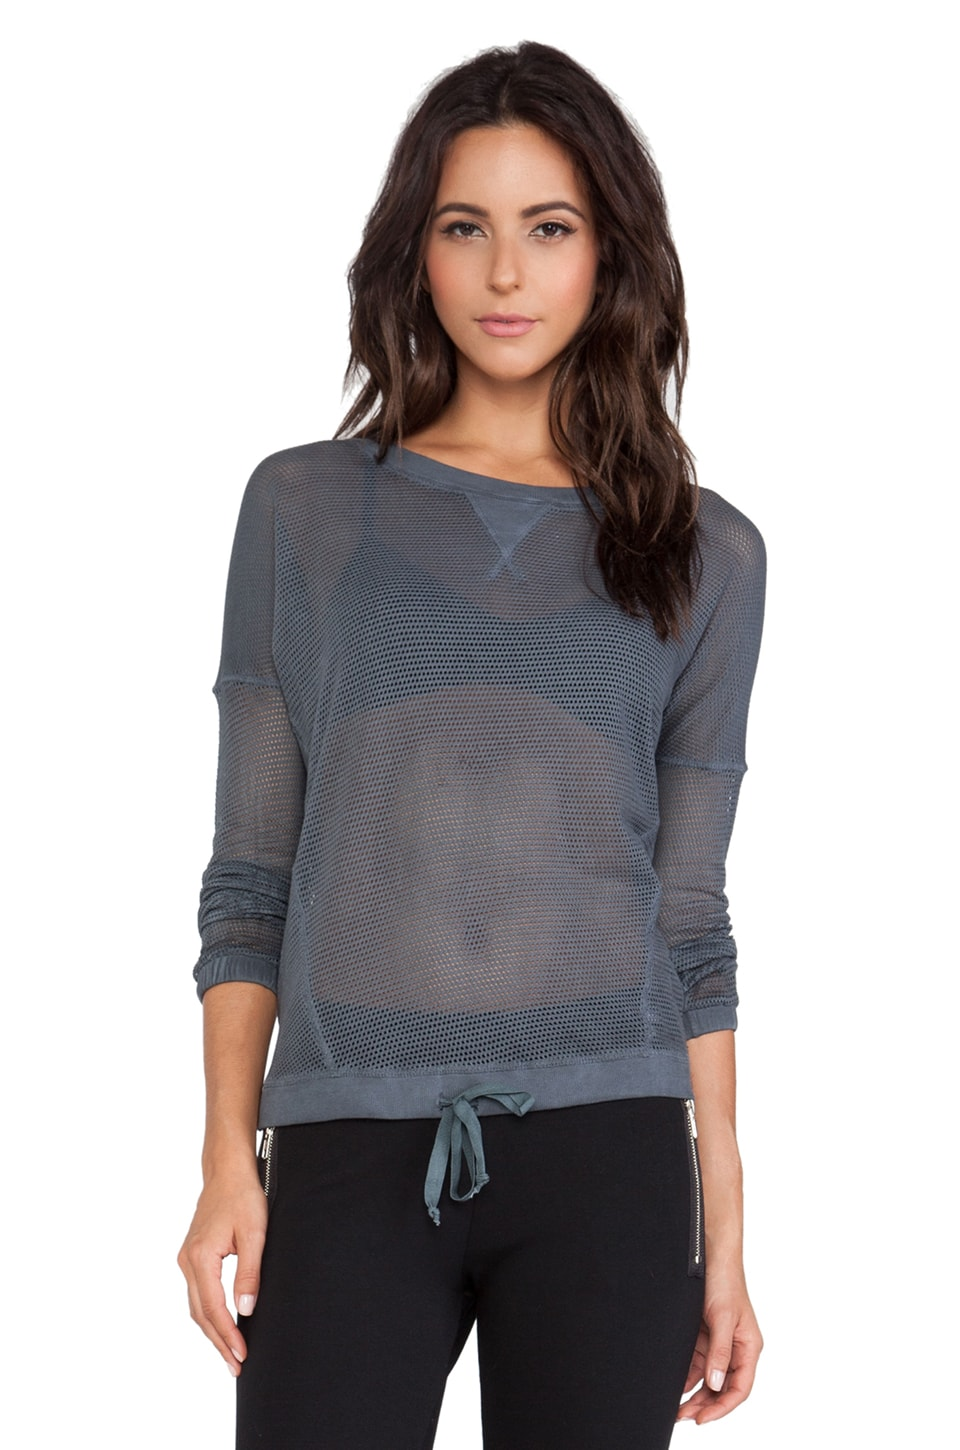 SOLOW So Low Mesh Sweatshirt in Black